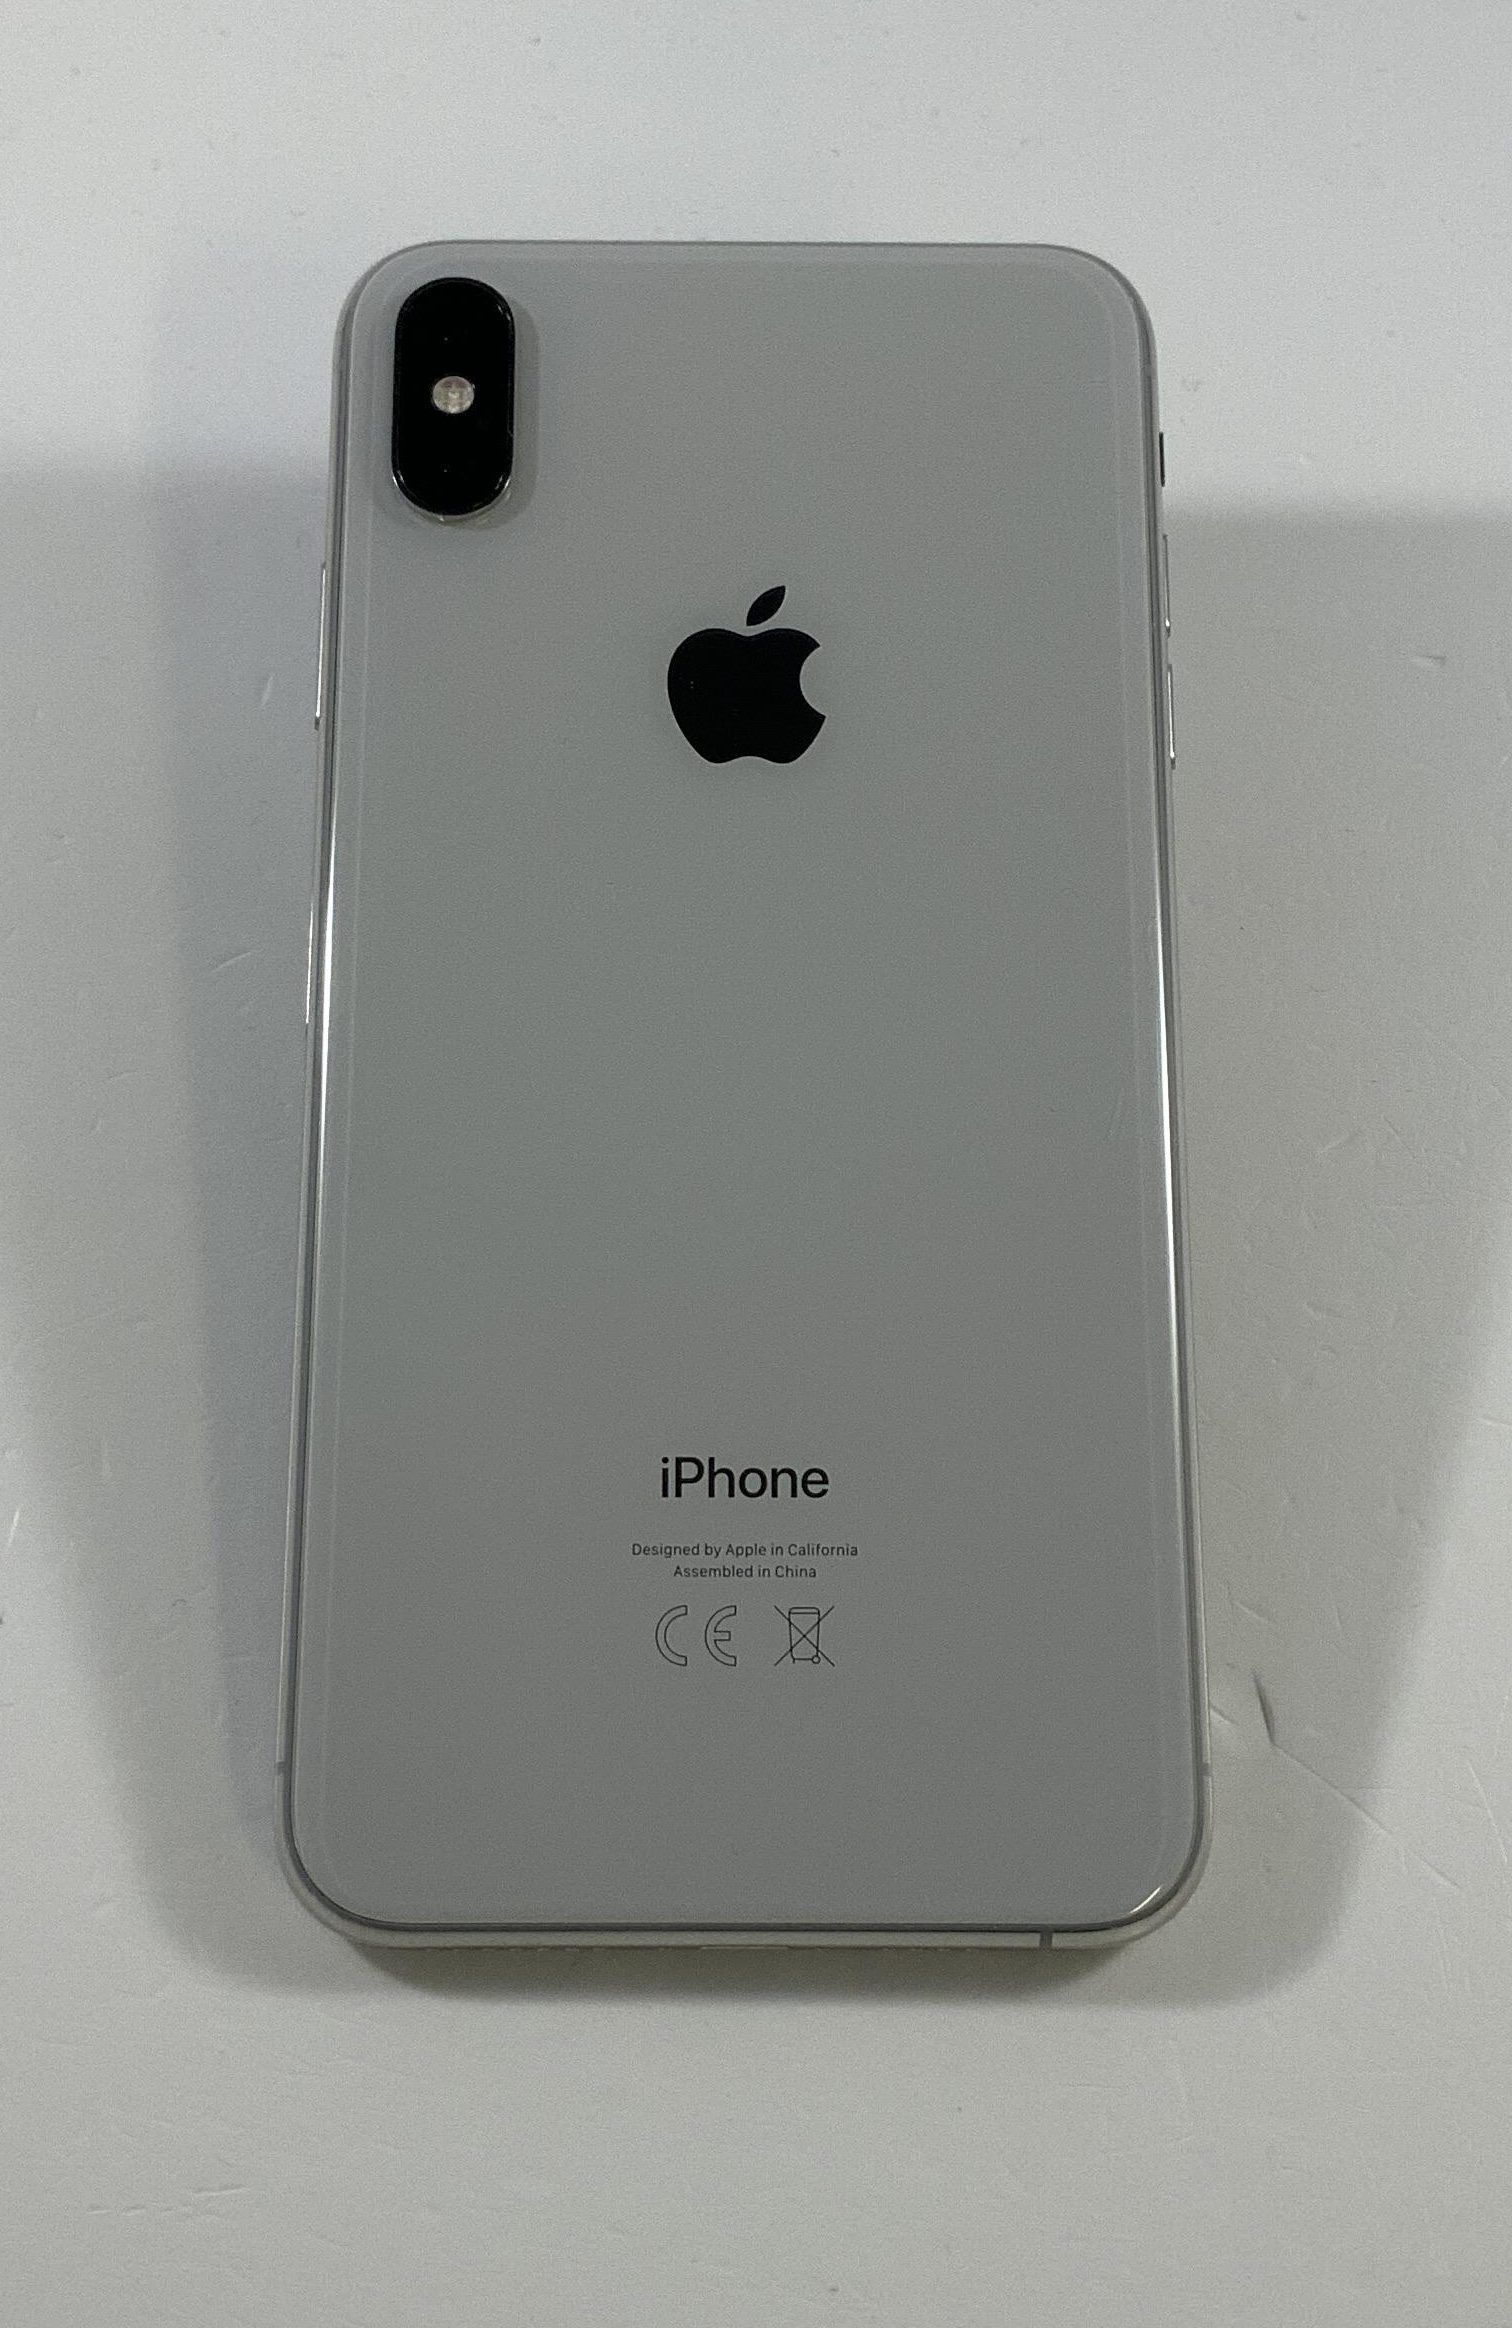 iPhone XS Max 64GB, 64GB, Silver, image 2